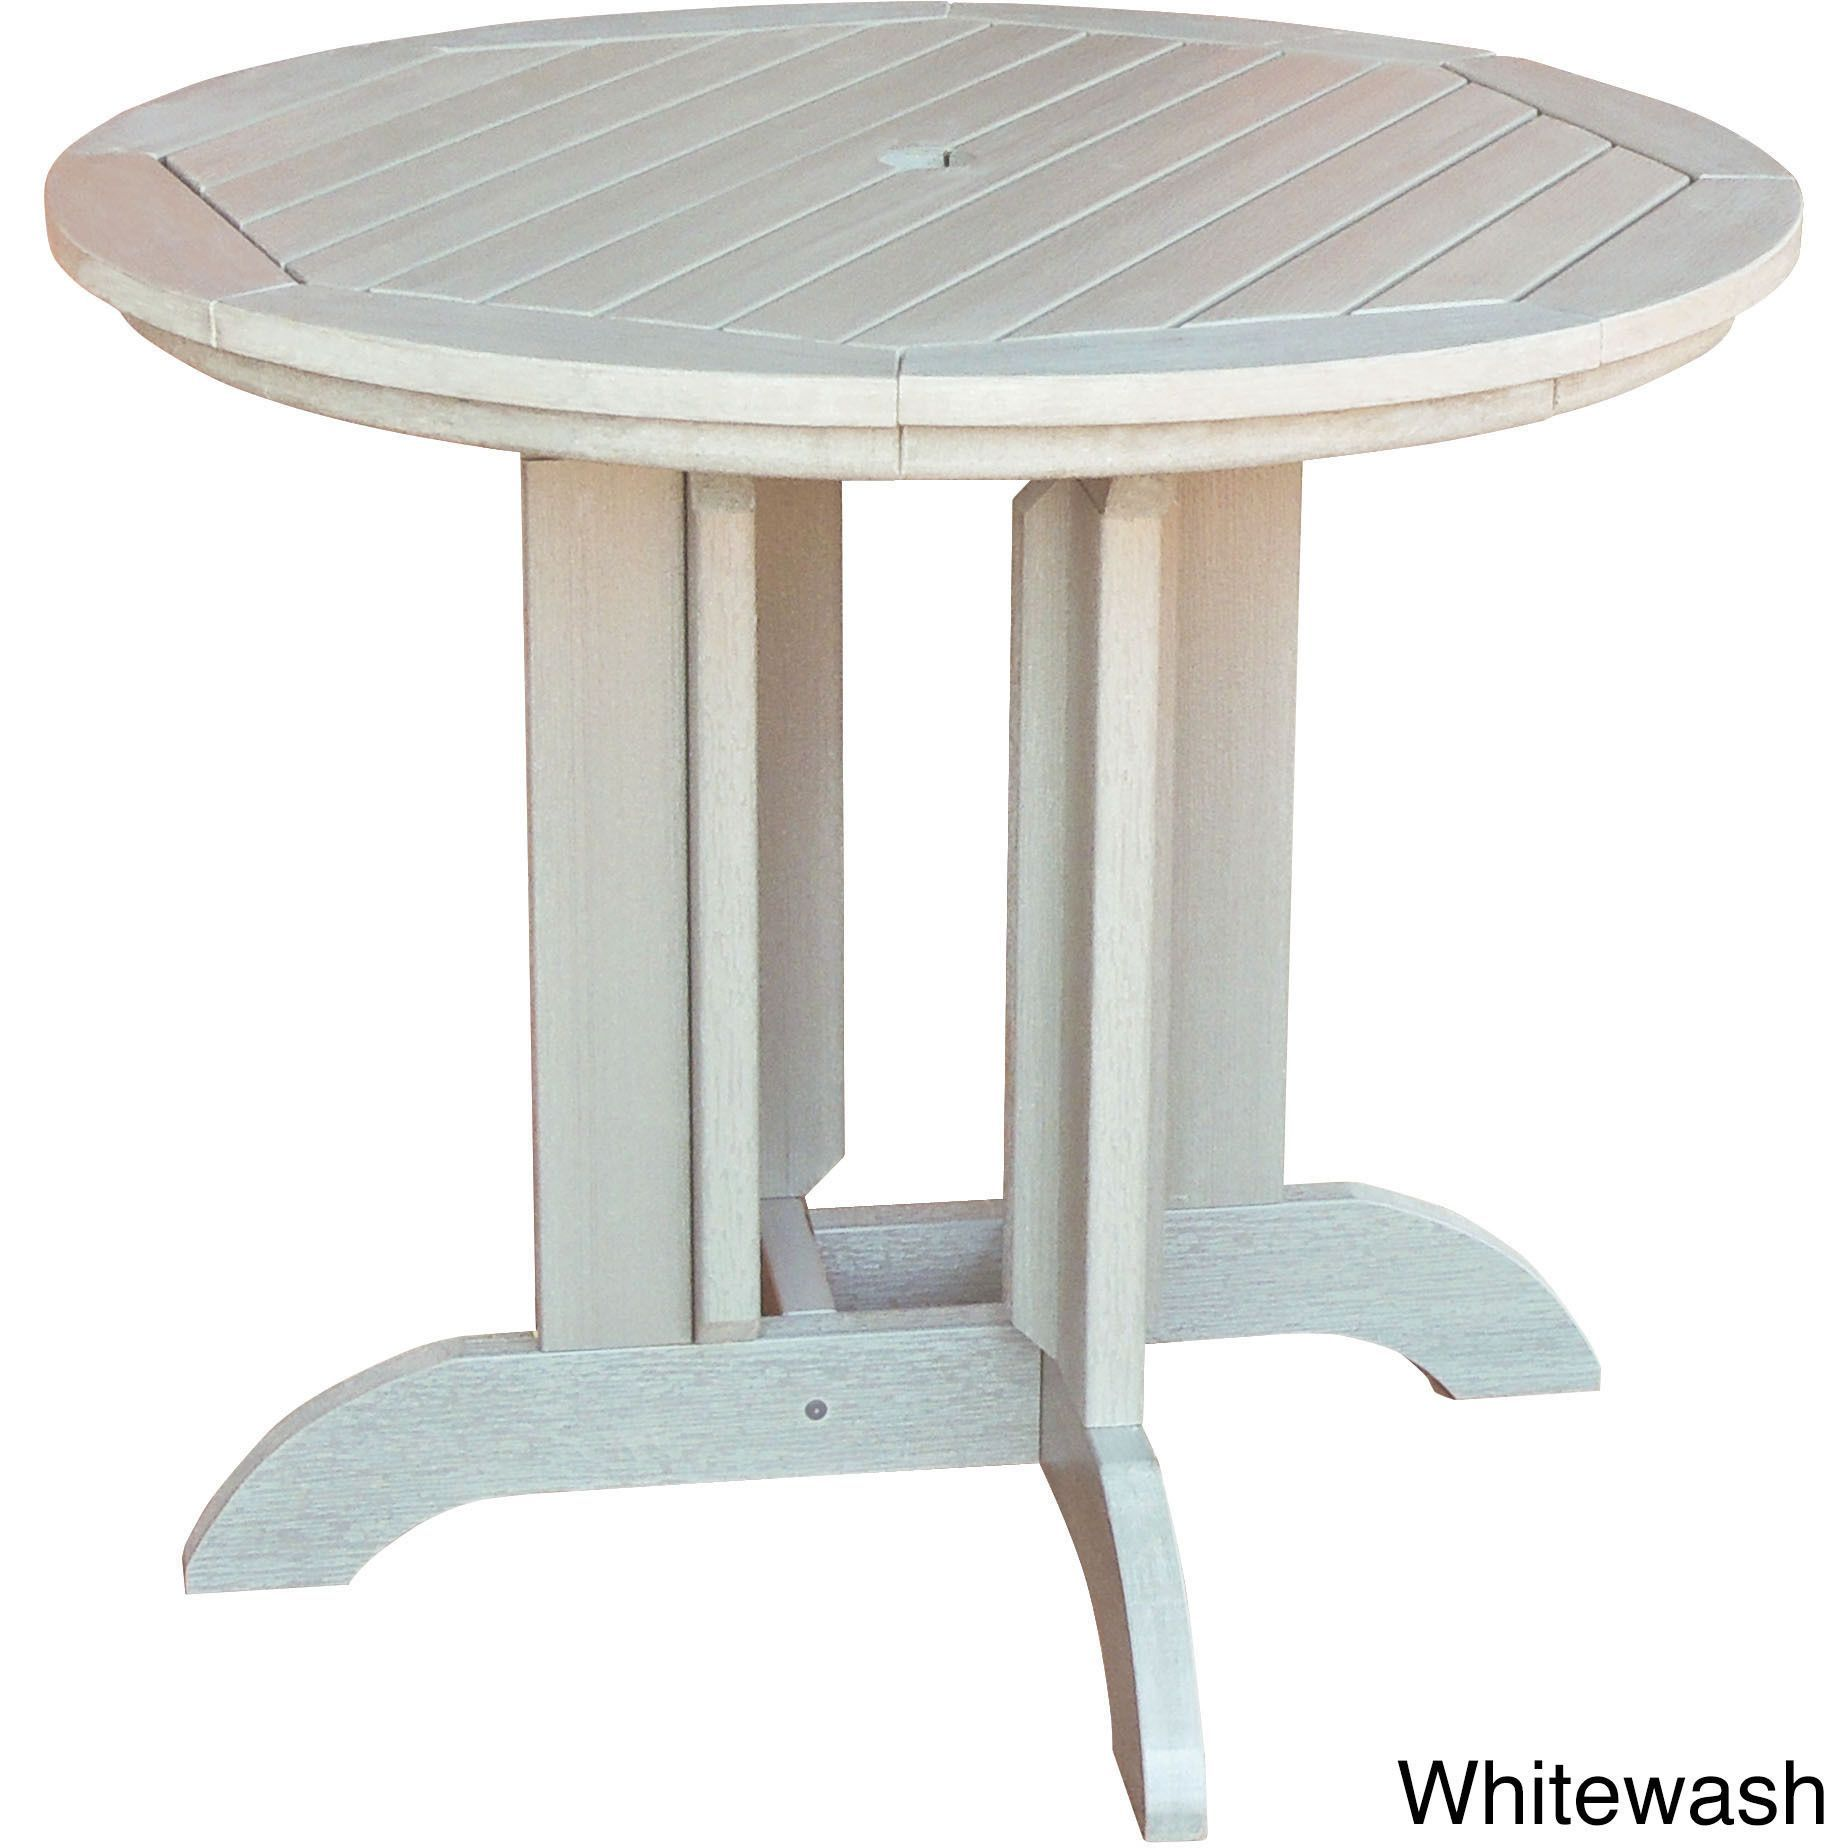 Highwood 36 Inch Round Dining Table Black Patio Furniture Plastic